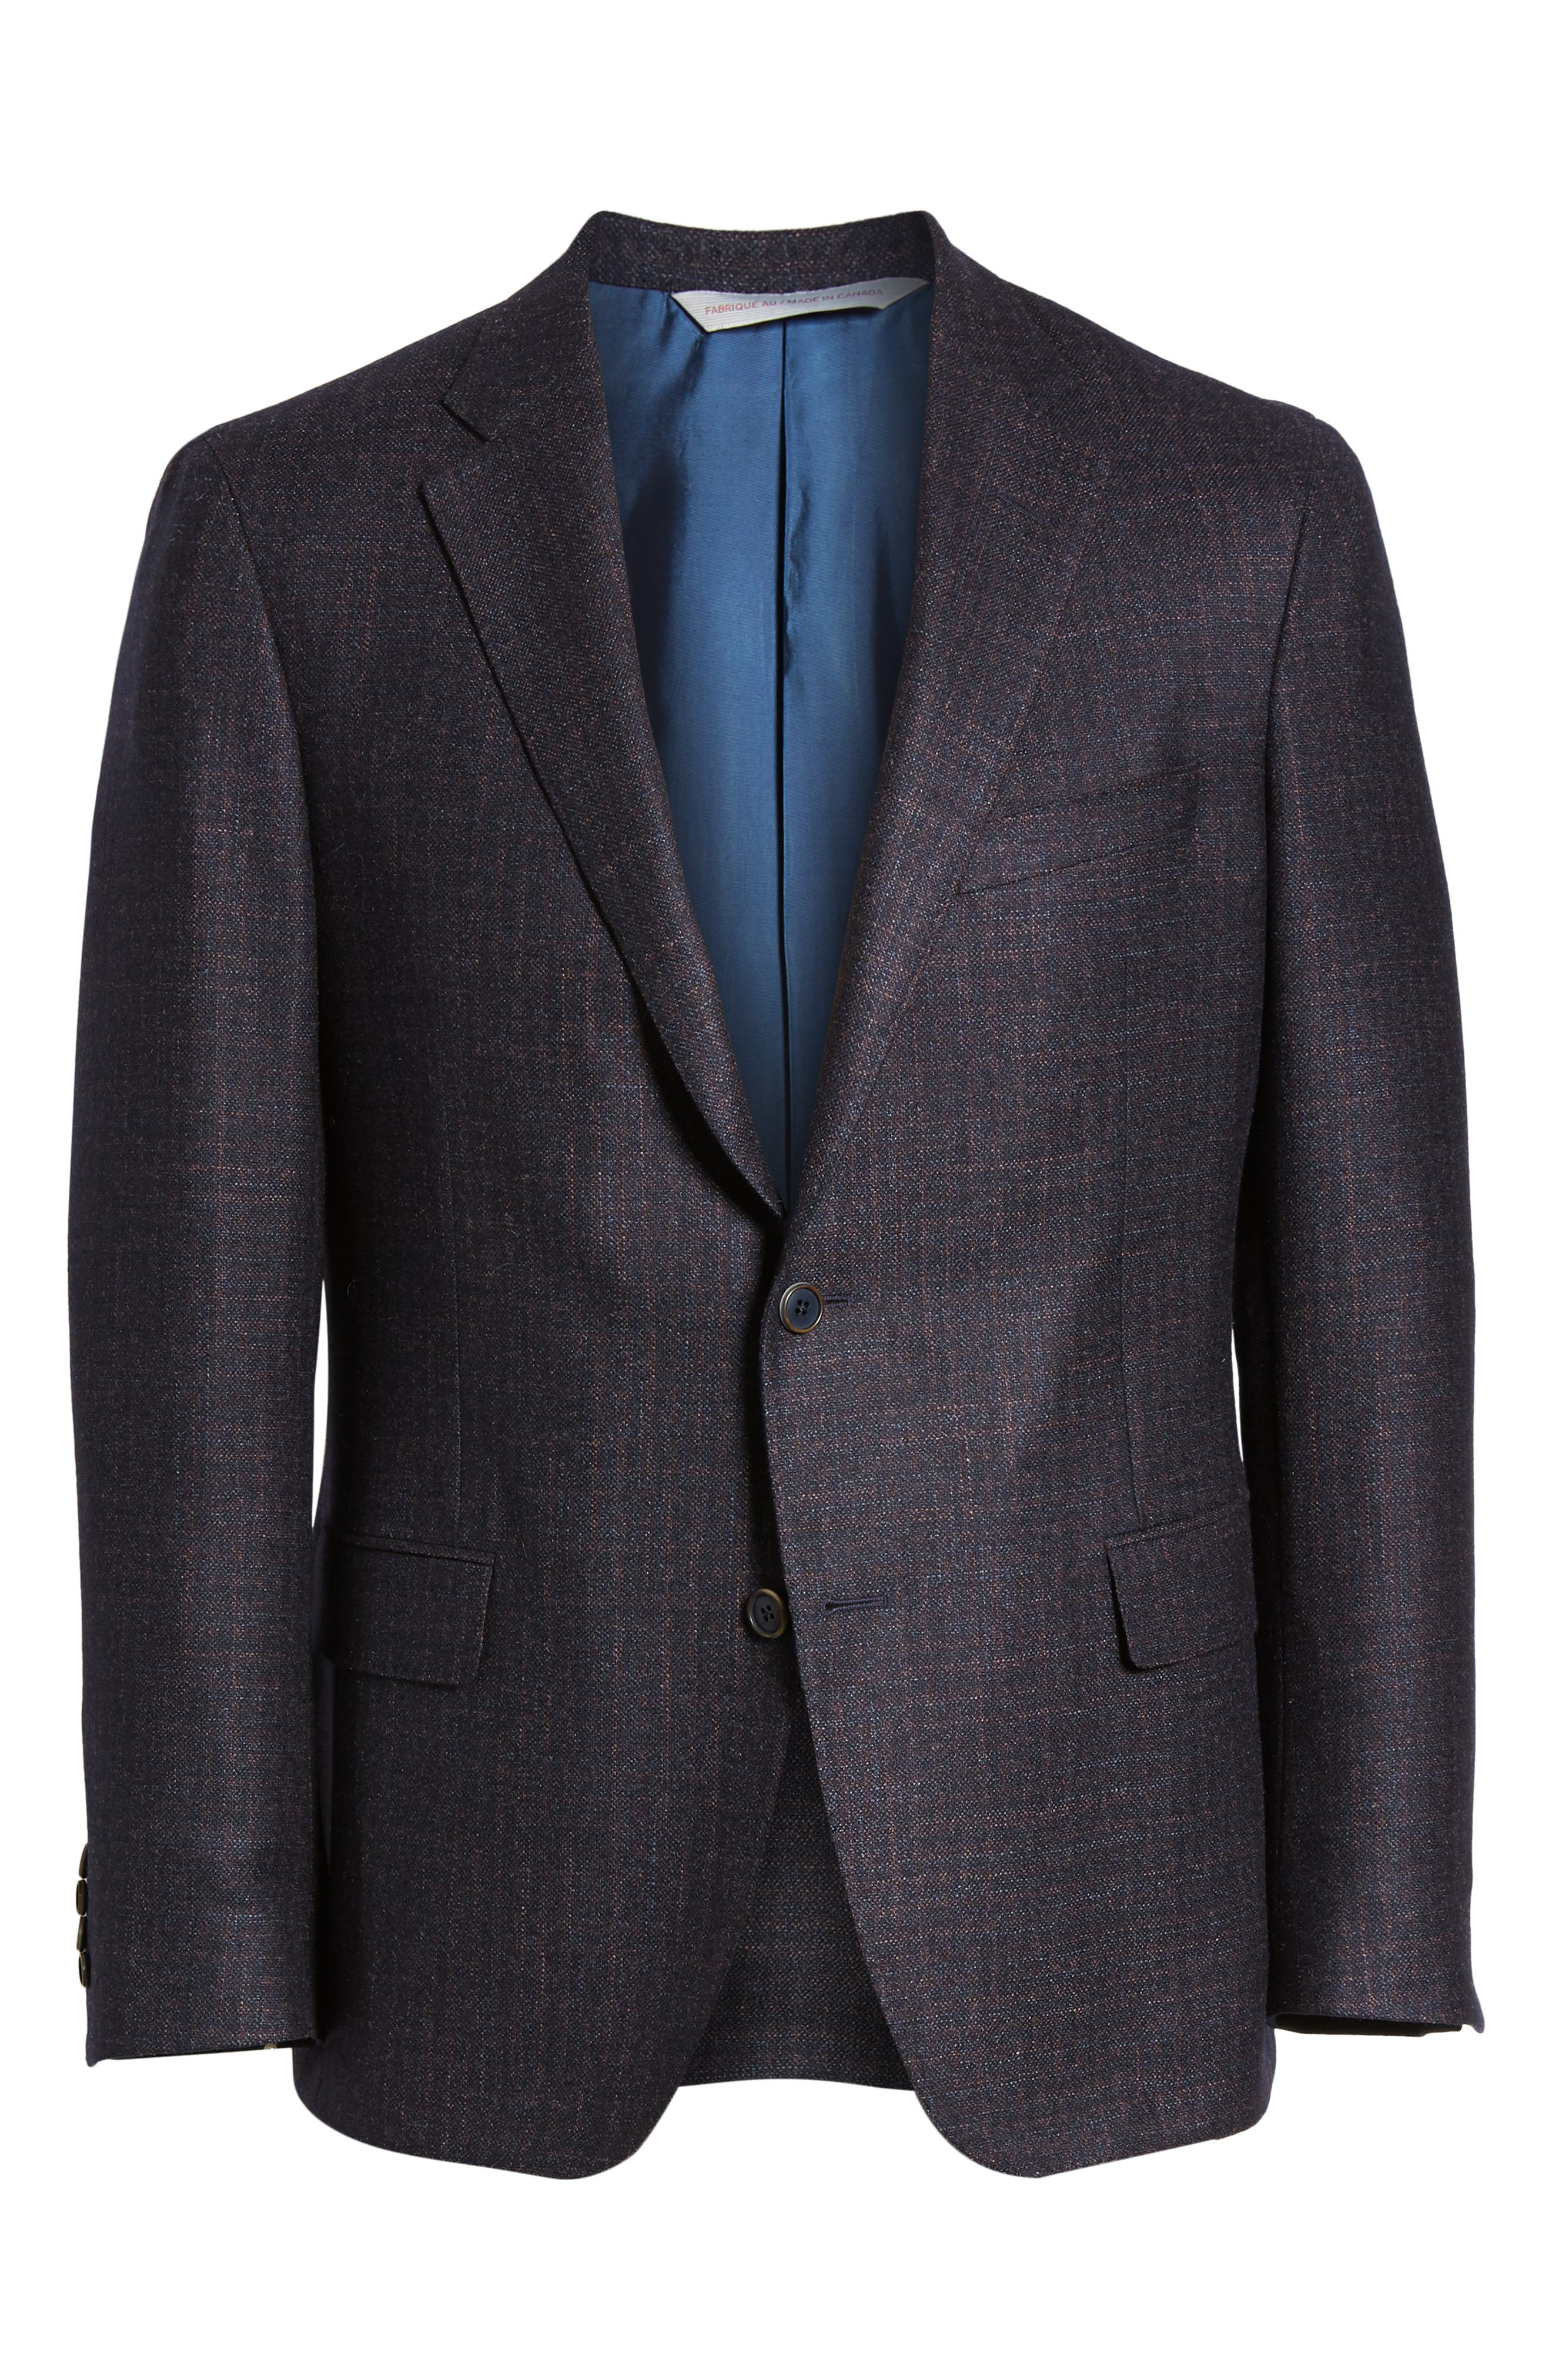 Classic Fit Wool Blazer,                             Alternate thumbnail 5, color,                             NAVY/ BERRY